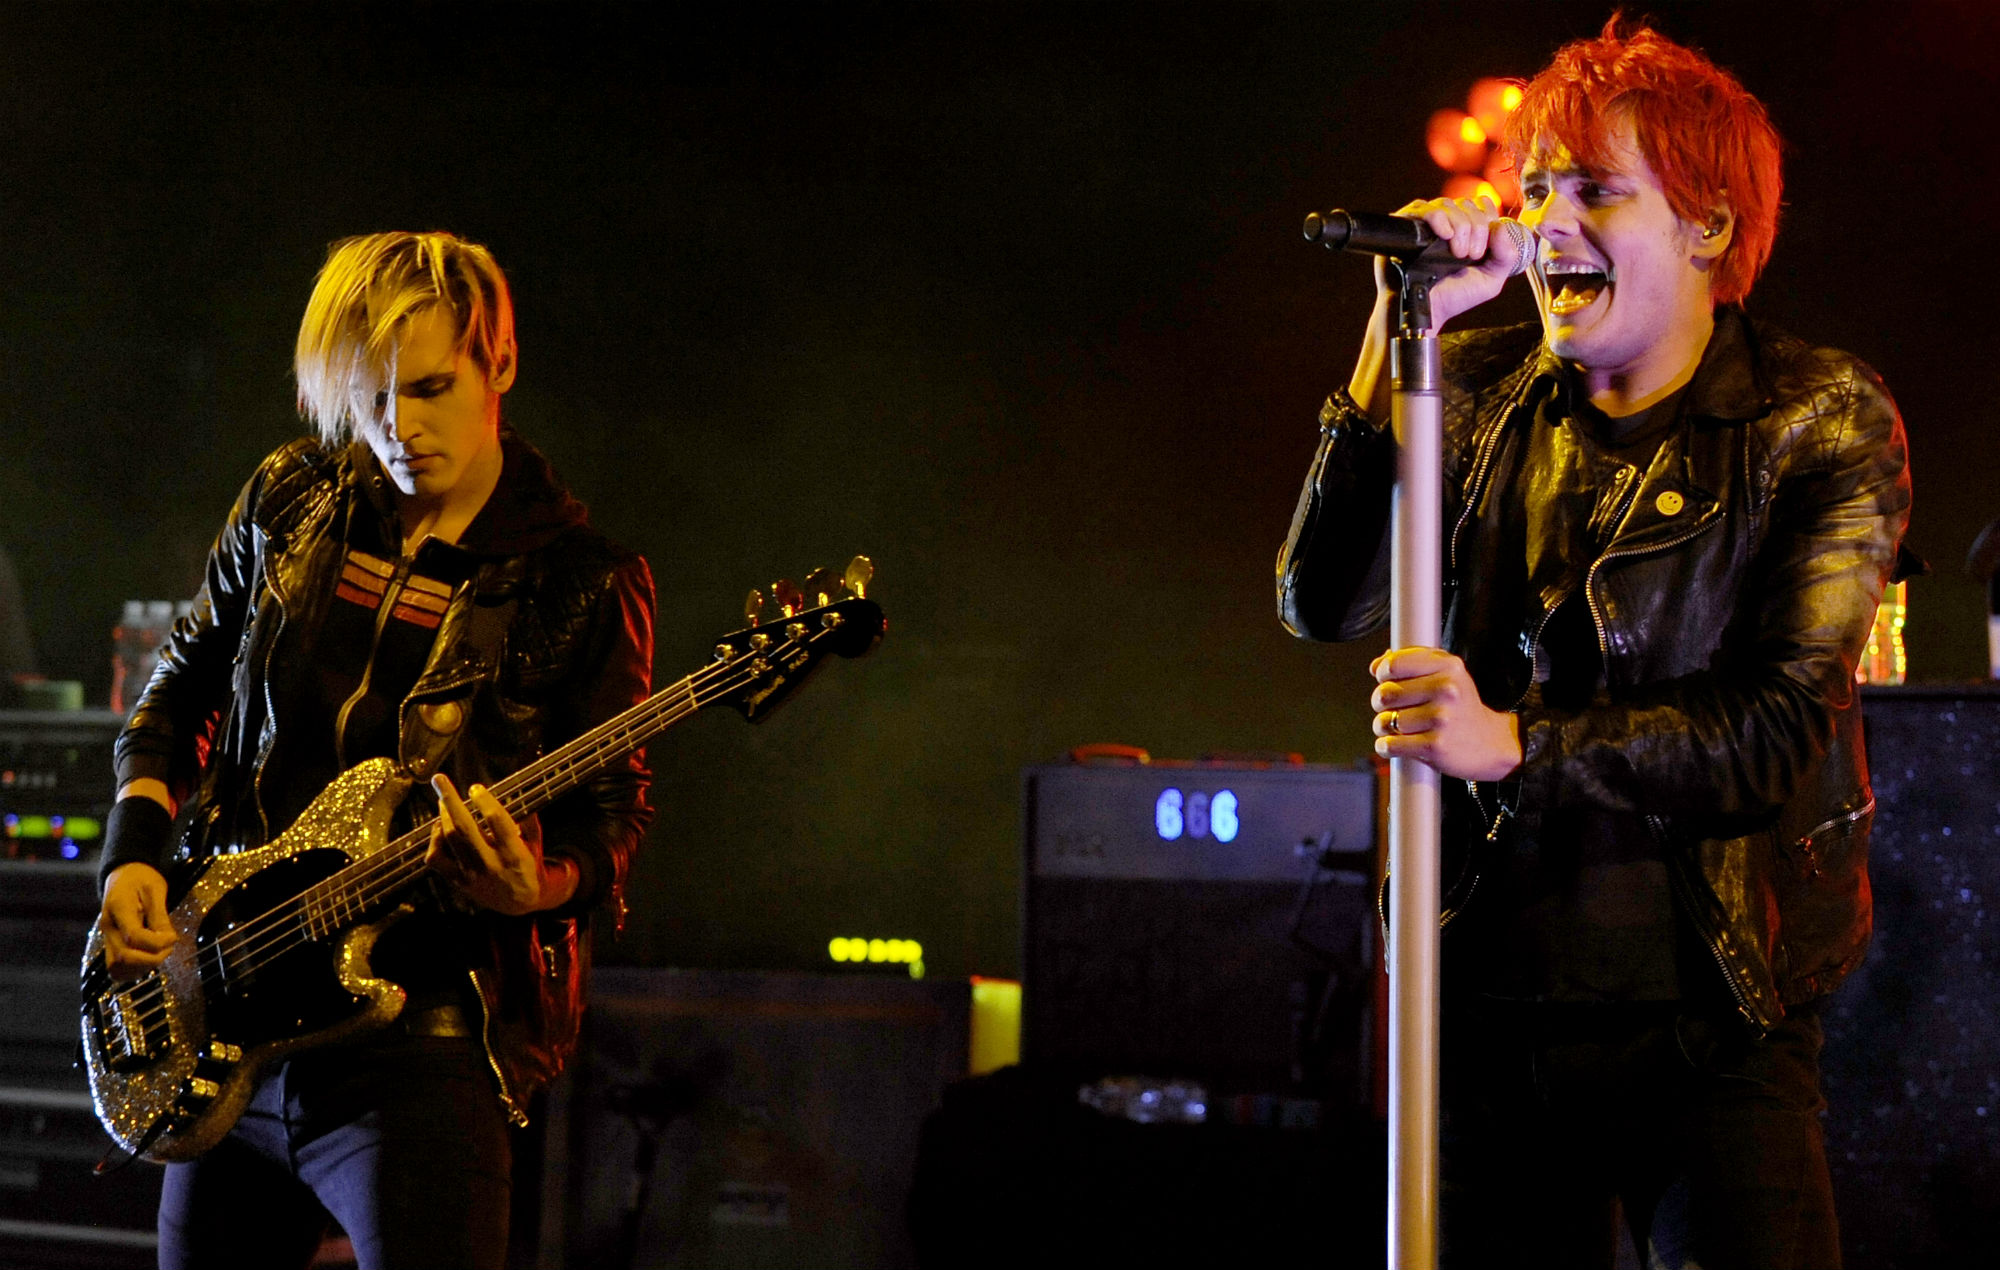 """Mikey Way says My Chemical Romance's return is """"just on pause"""""""